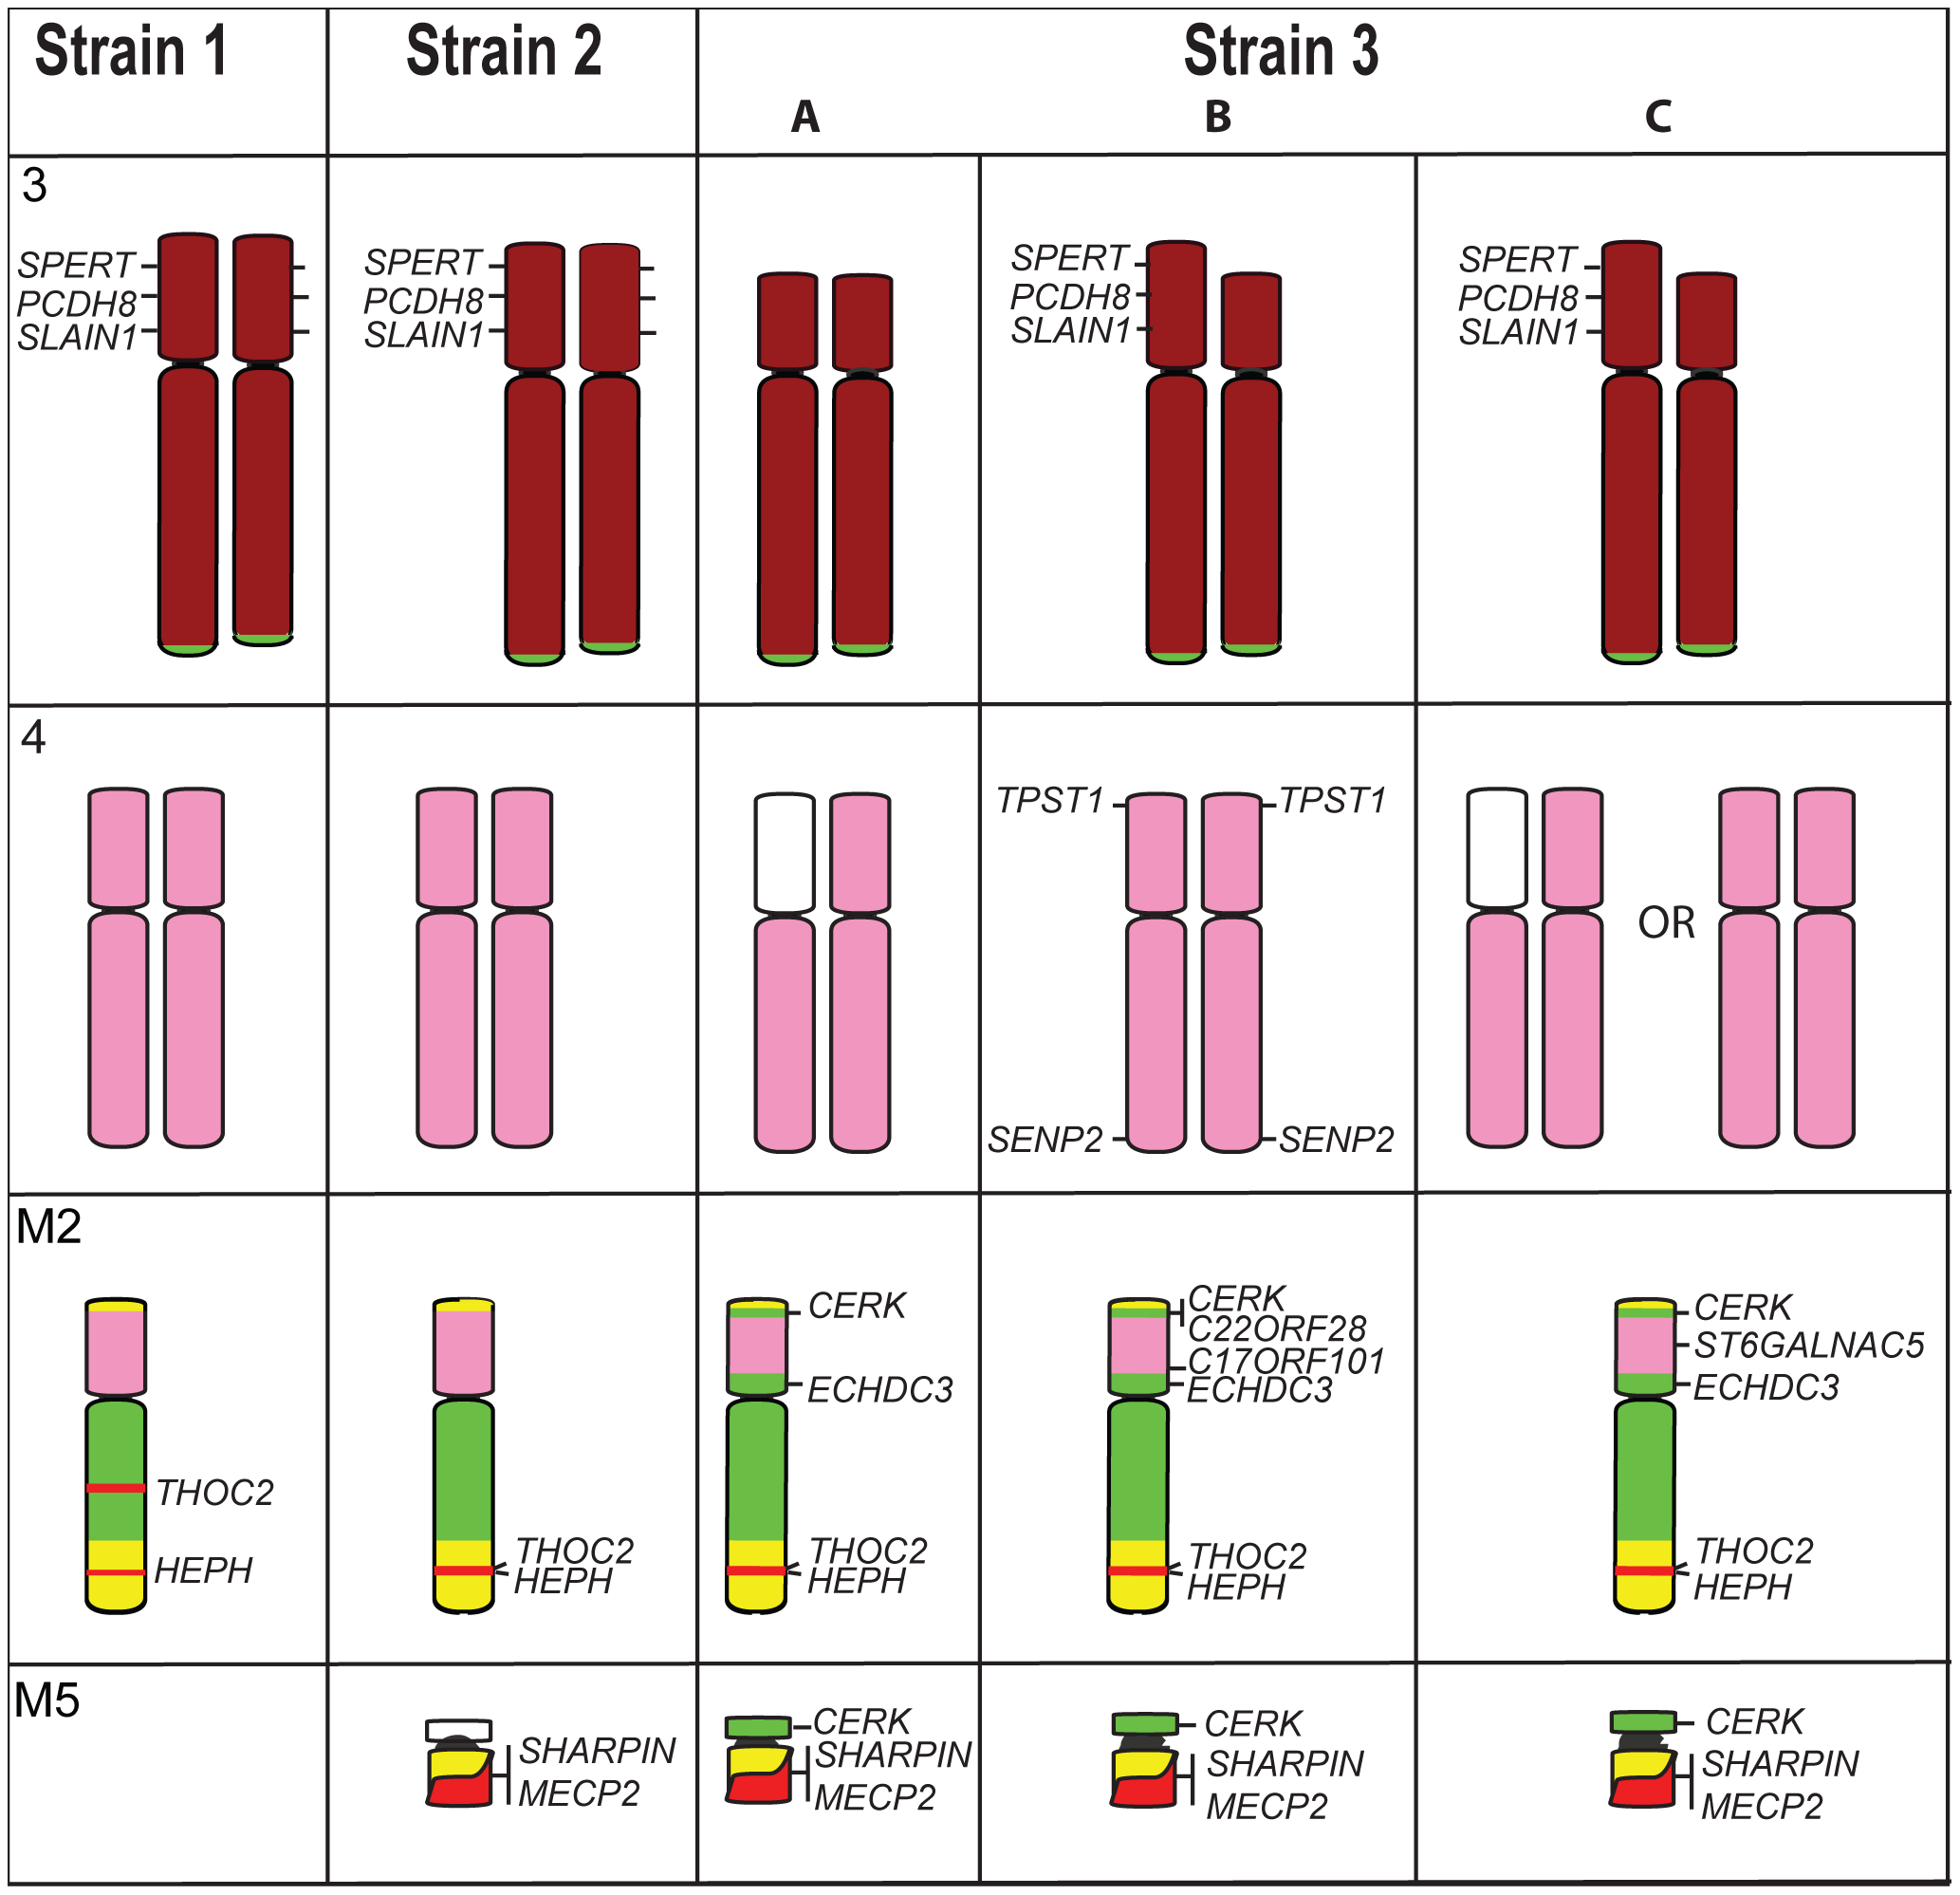 Differences detected by gene mapping among Strains 1, 2, and the three different Strain 3s.